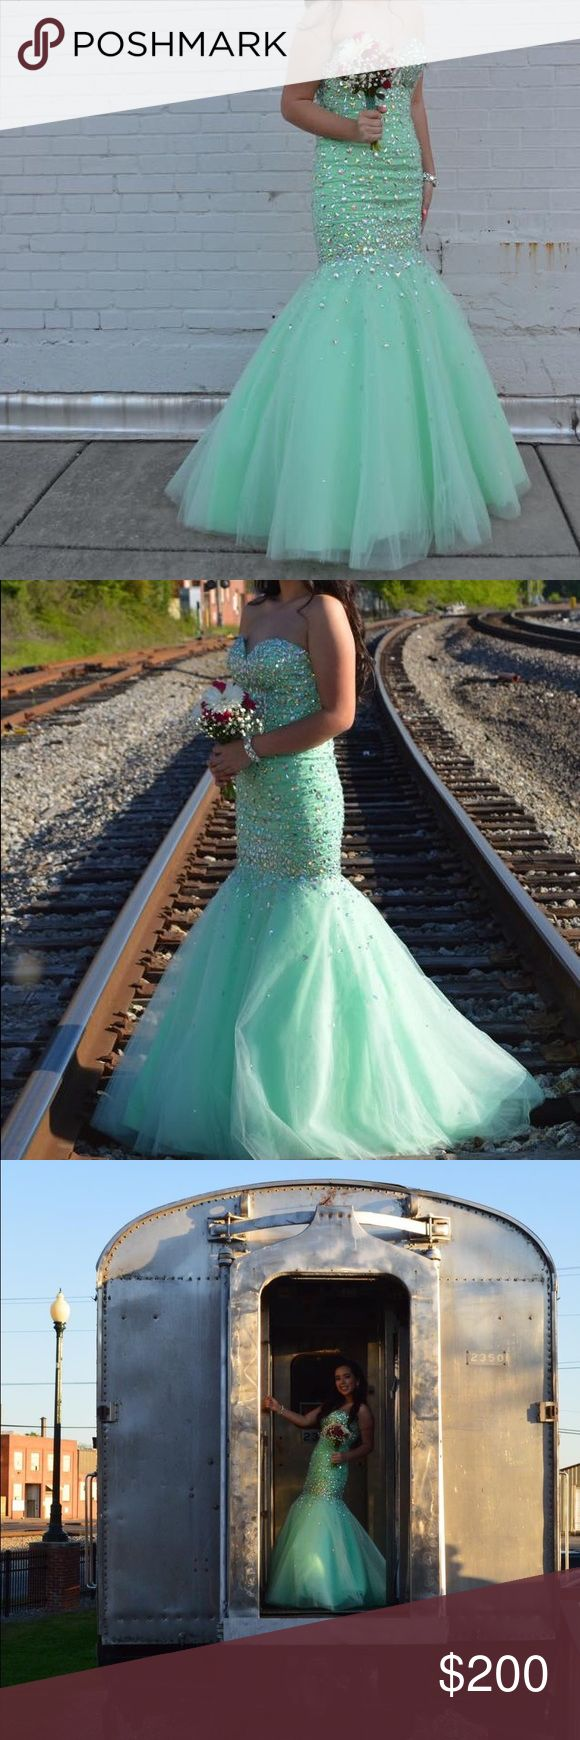 Prom Dress 👗 BEAUTIFUL Mori Lee prom dress! In good conditions #prom #morilee #beautiful #promdress Mori Lee Dresses Prom